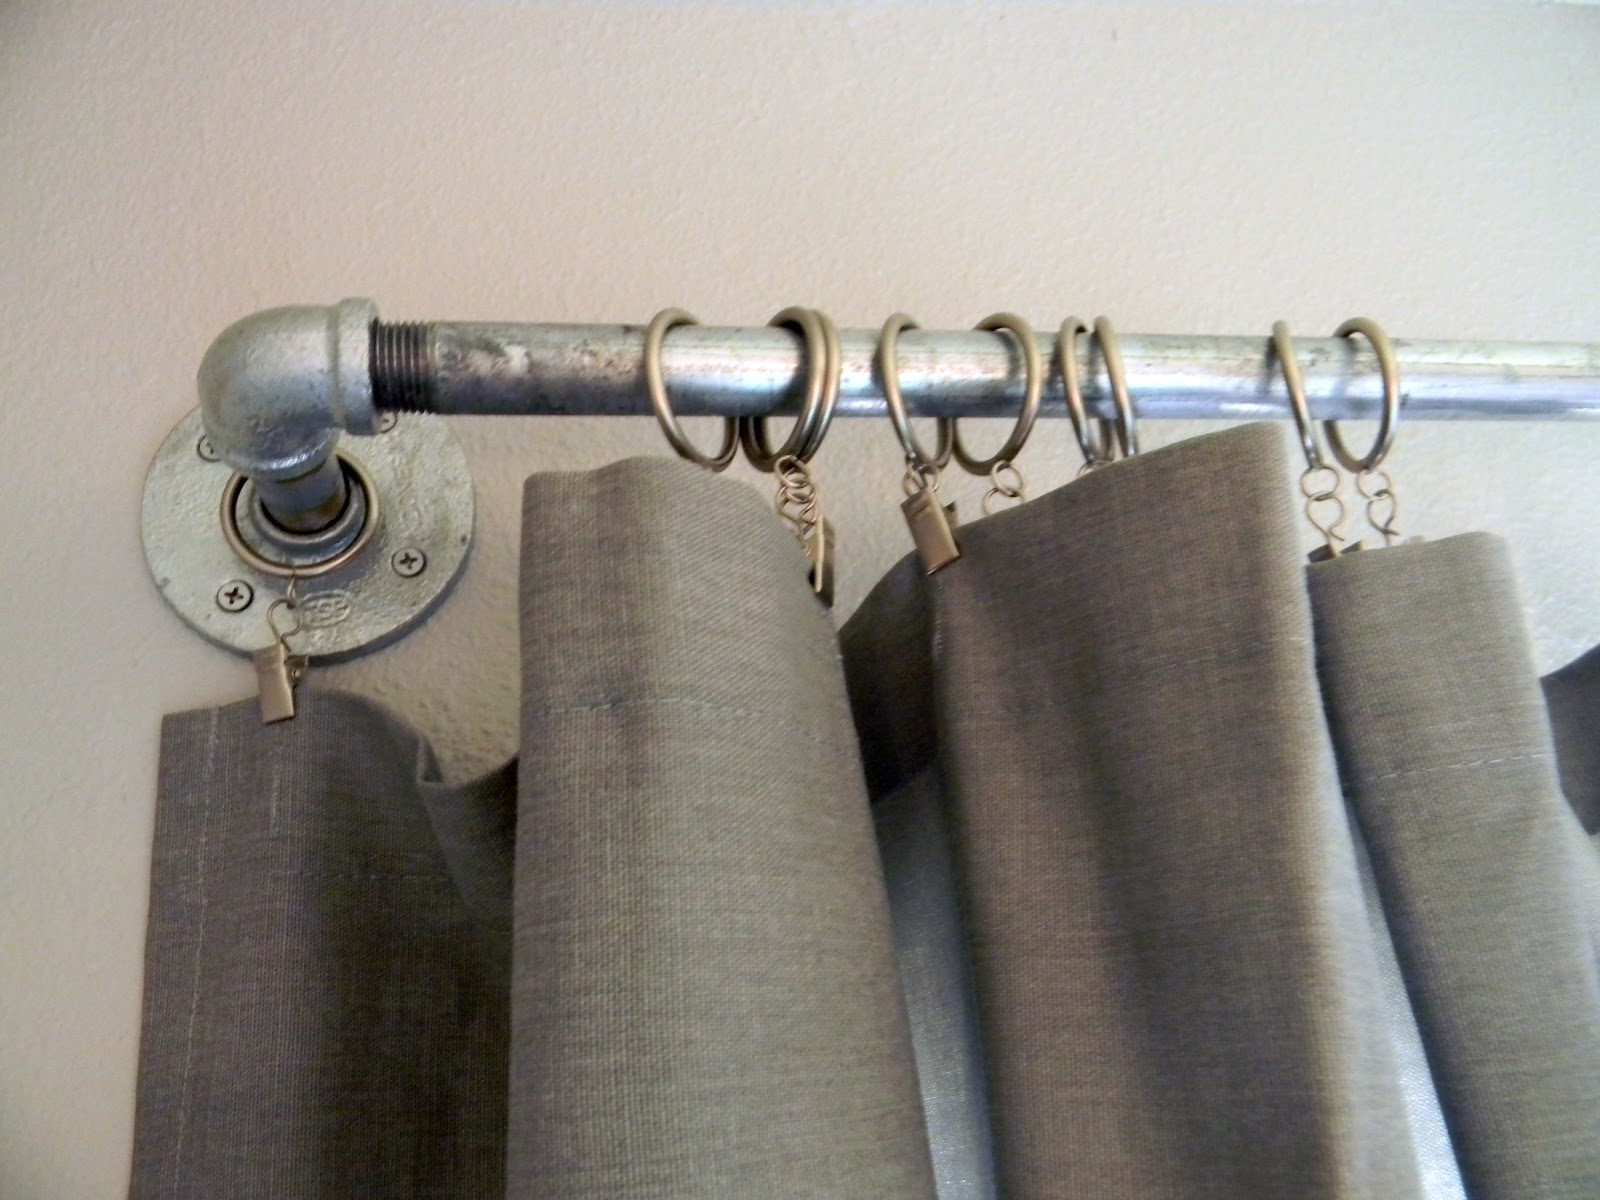 Nautical striped shower curtains - Diy West Elm Curtain Rod Amp Striped Curtains Schue Love